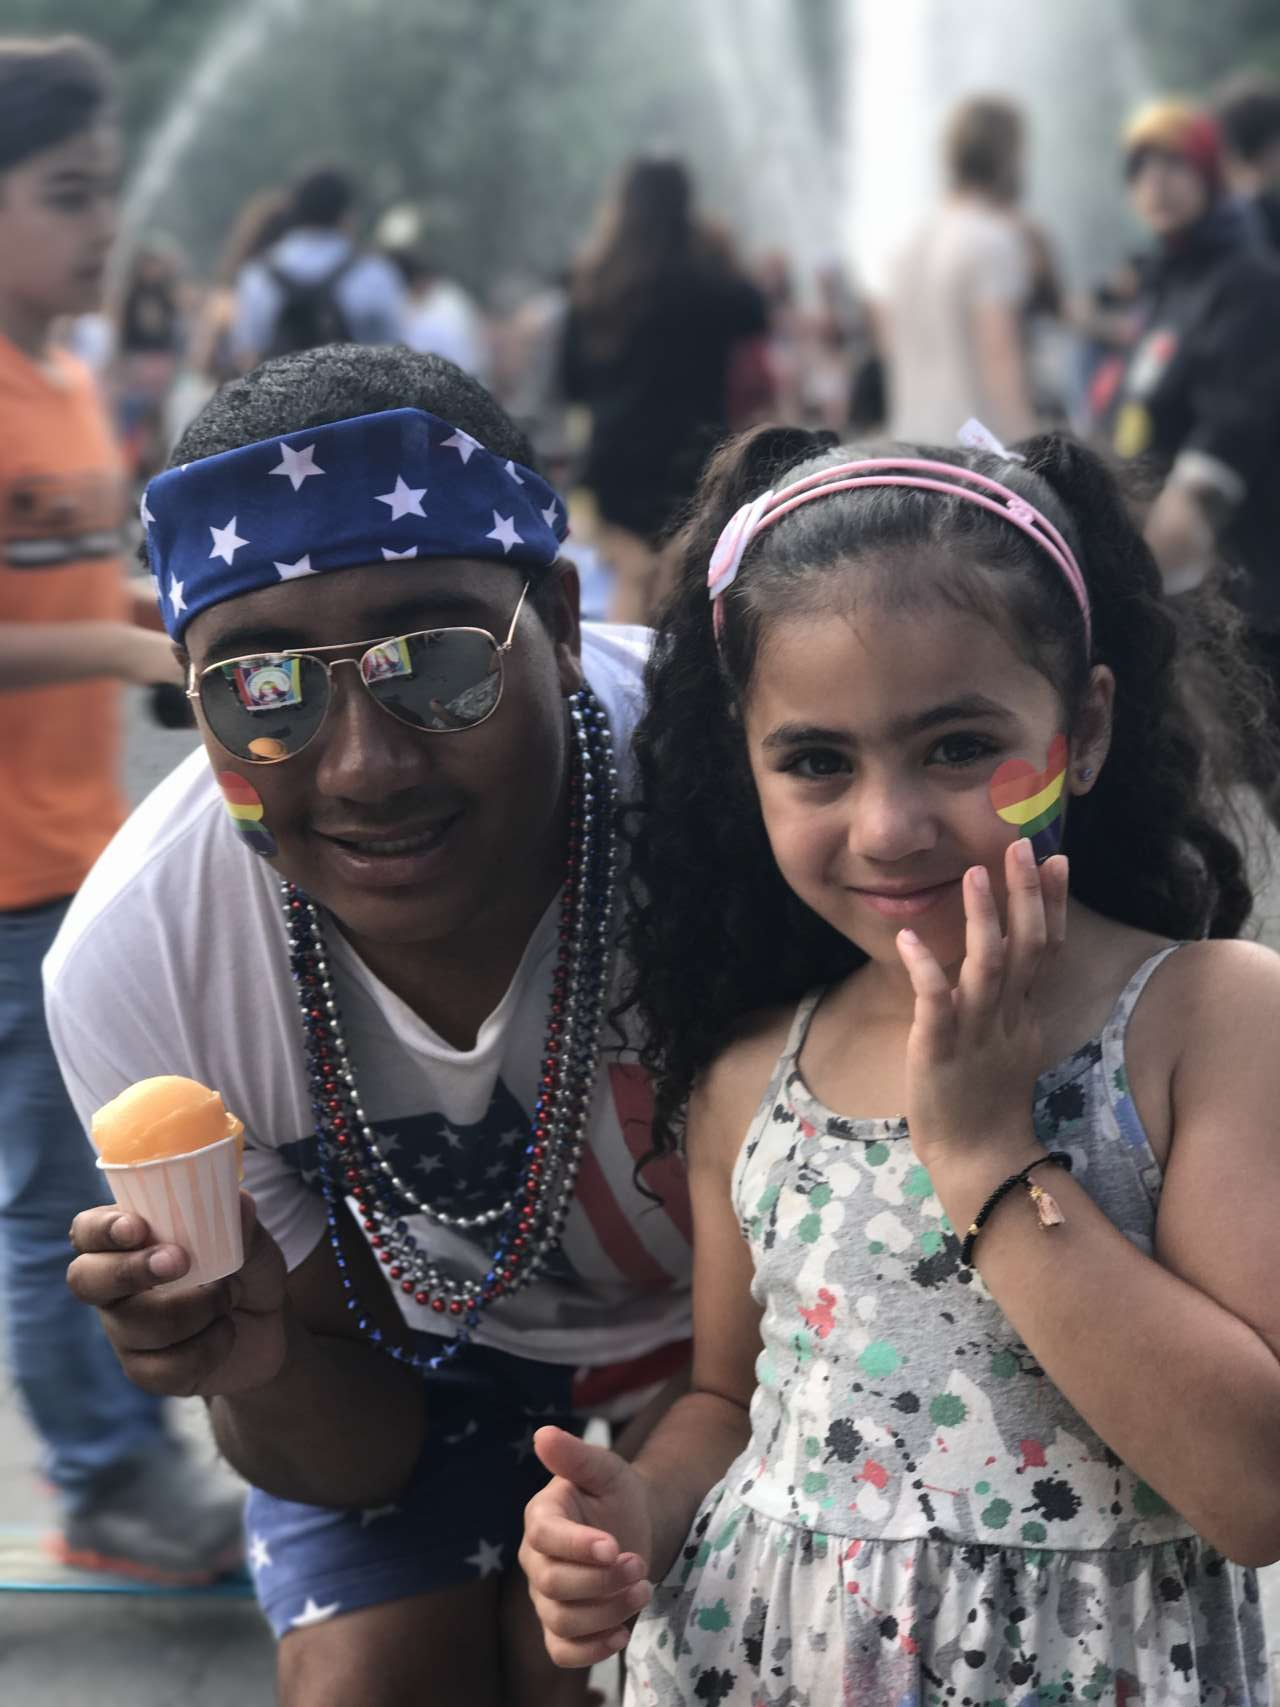 Man with bandana, sunglasses and rainbow heart sticker on face holding a mango italian ice next to girl, India Jolie with rainbow heart sticker on face wearing printed dress with fountain in background